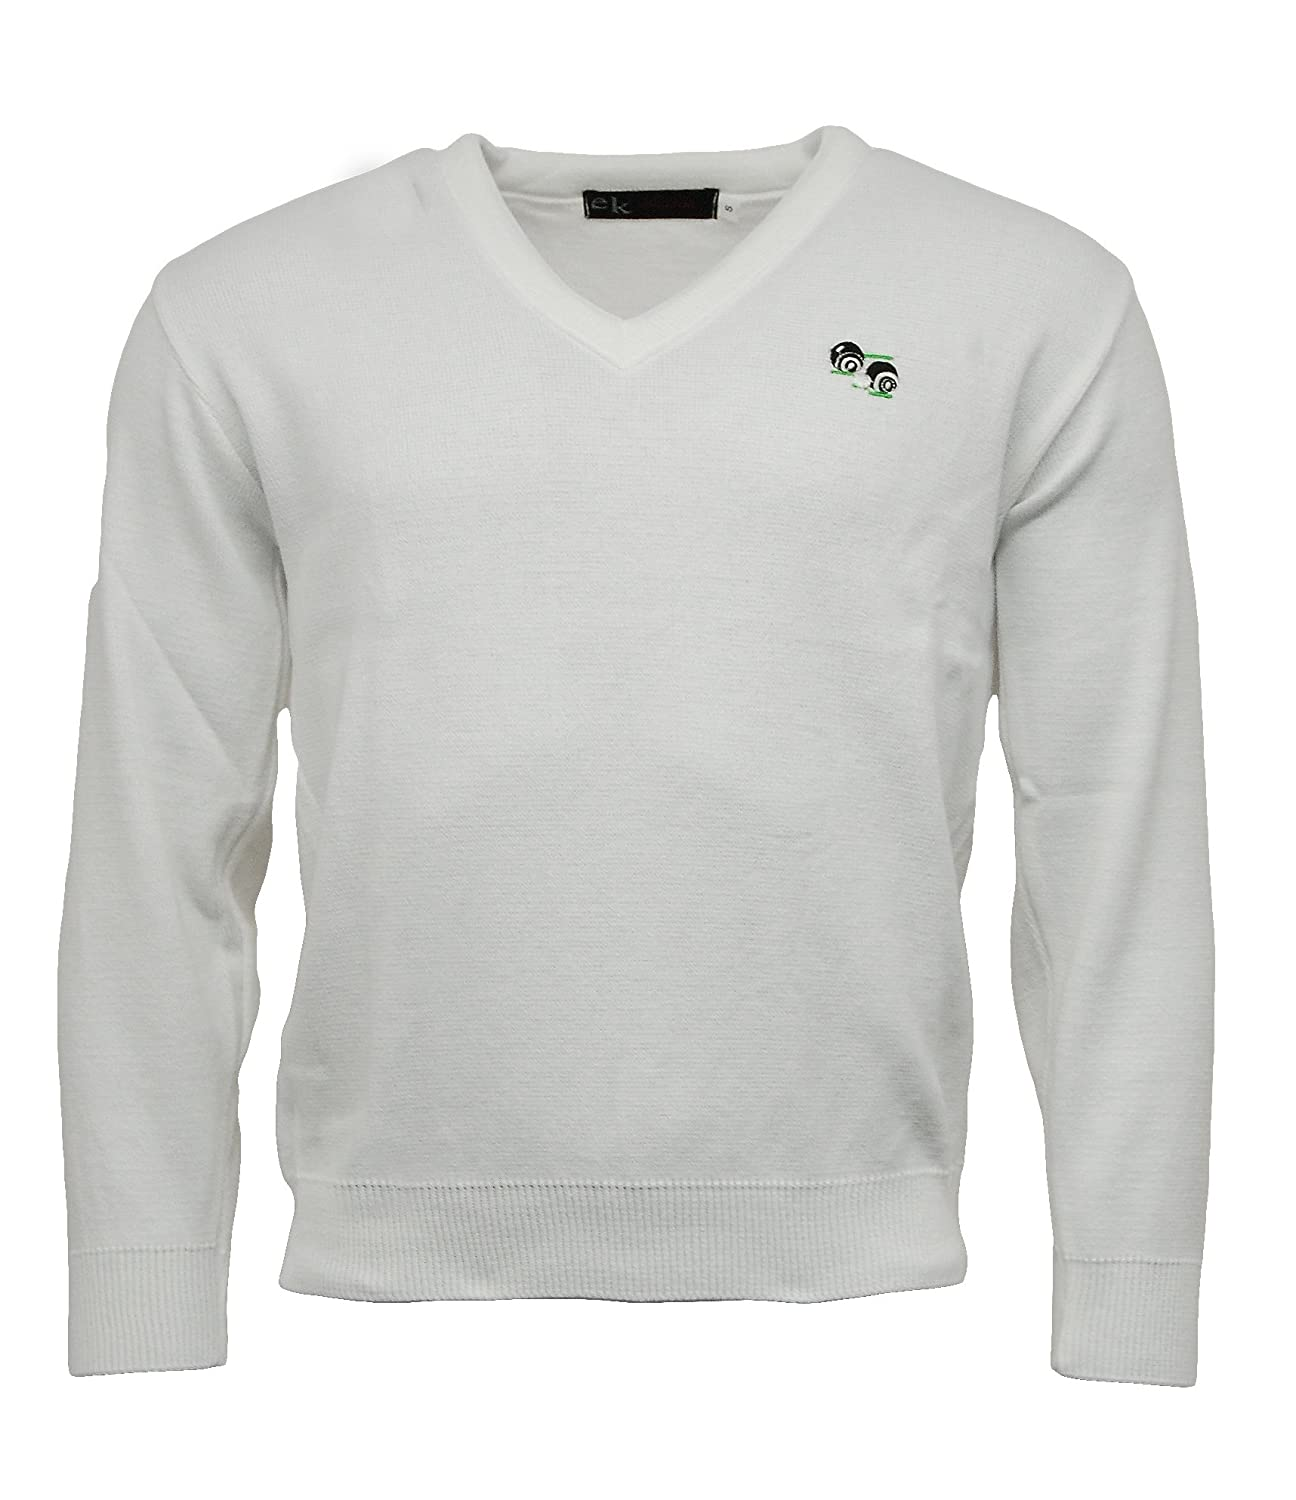 Bowls Lawn Bowling V-Neck White Jumper with Logo Express Knitwear